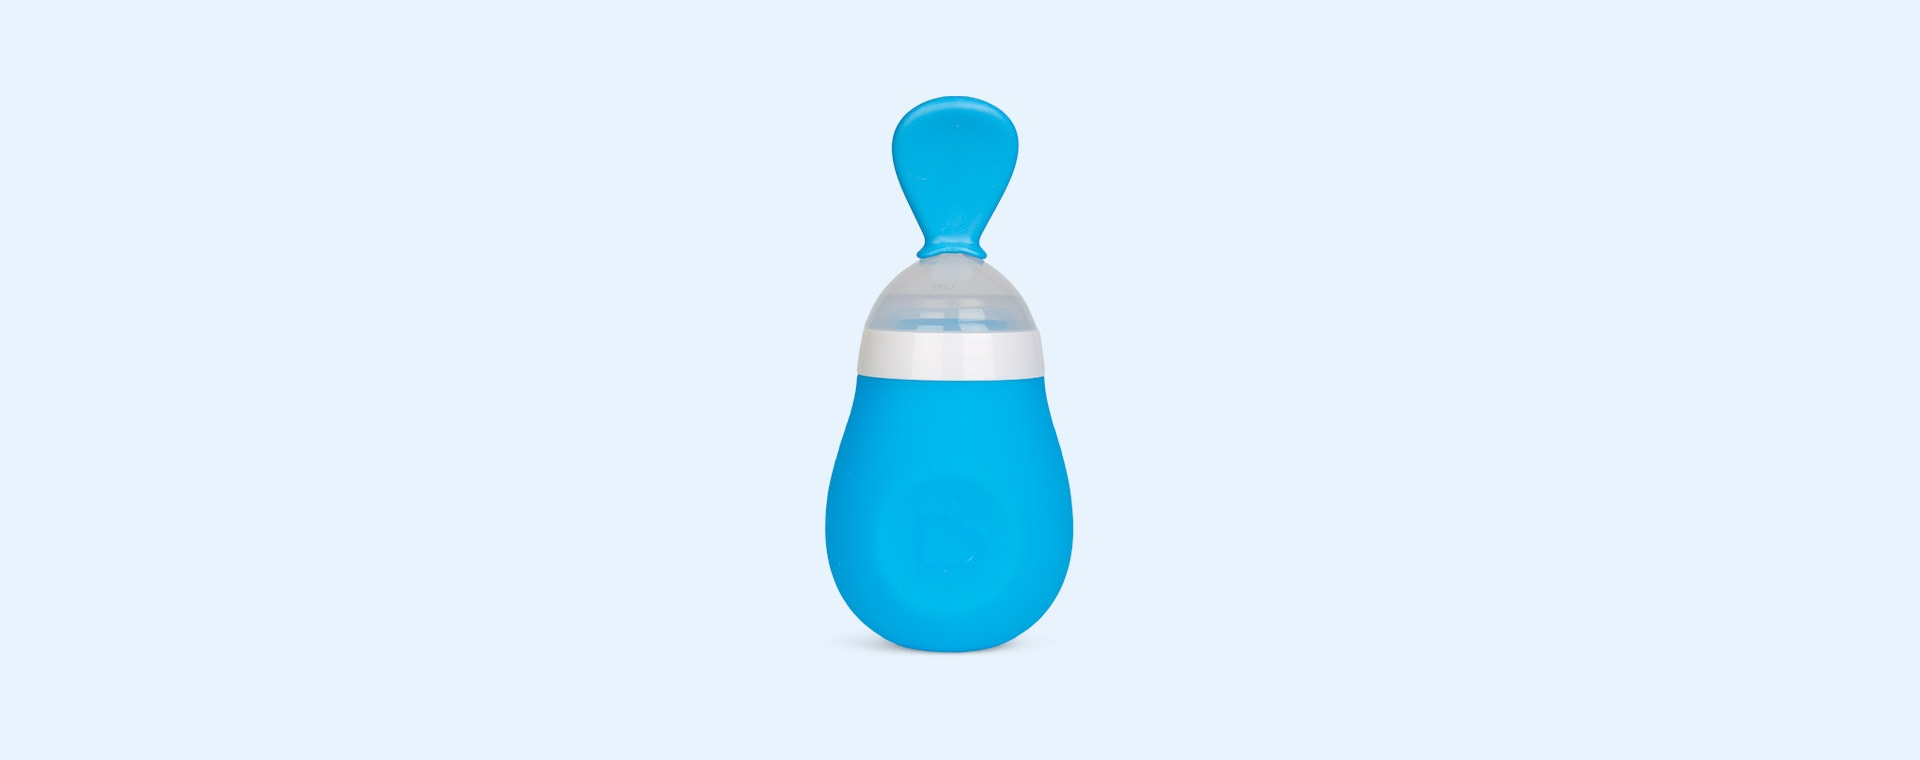 Blue Munchkin Squeeze Spoon